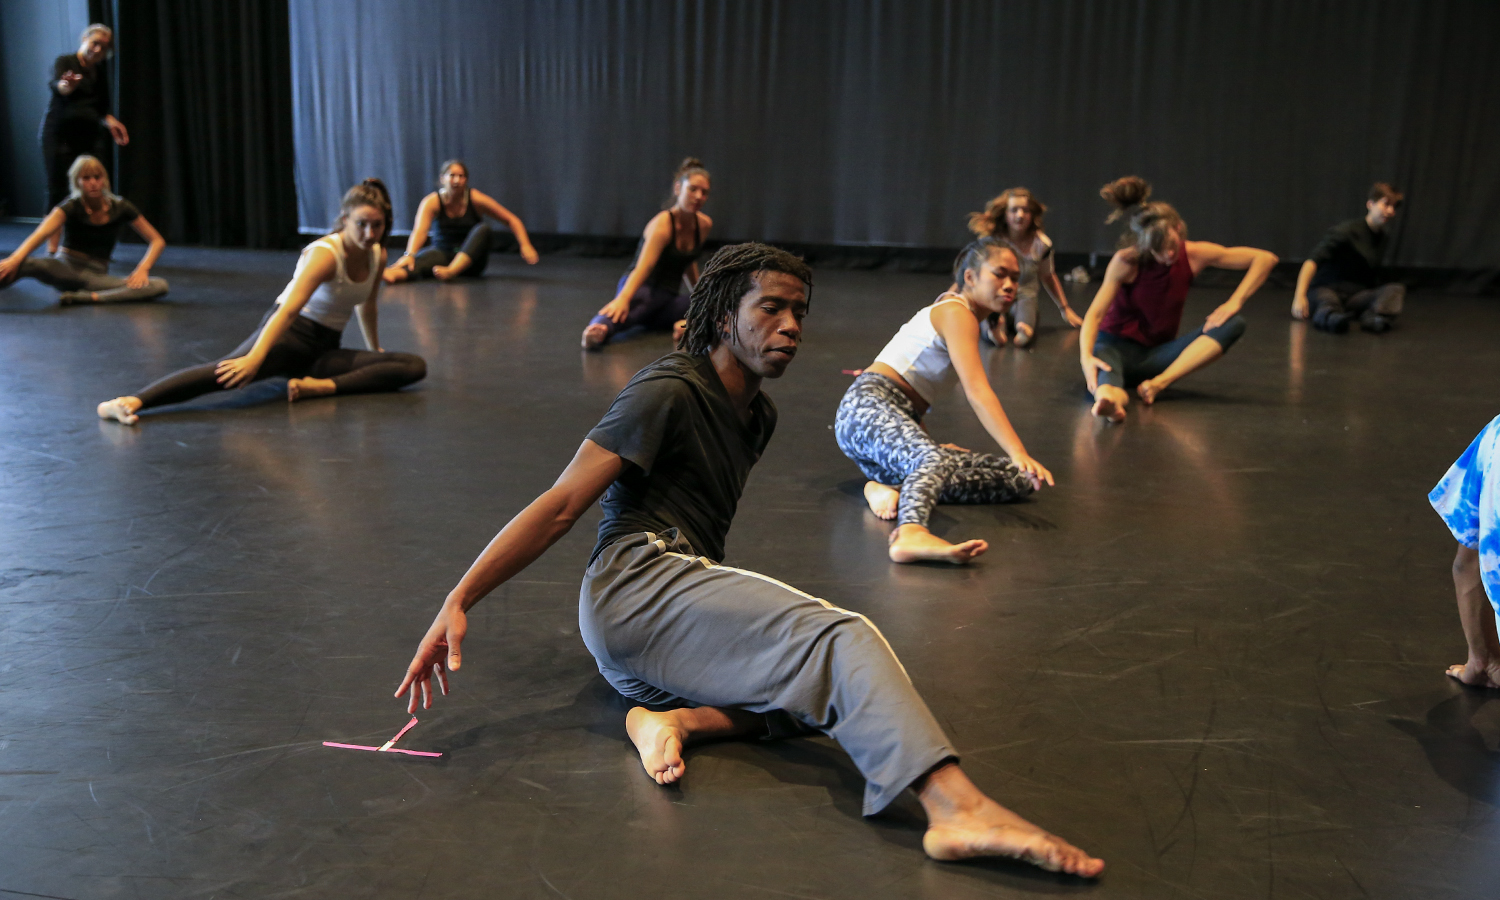 Cameron McKinney, Artistic Director of Kizuna Dance, leads a contemporary dance workshop inDeming Theatre of the Gearan Center for the Performing Arts.